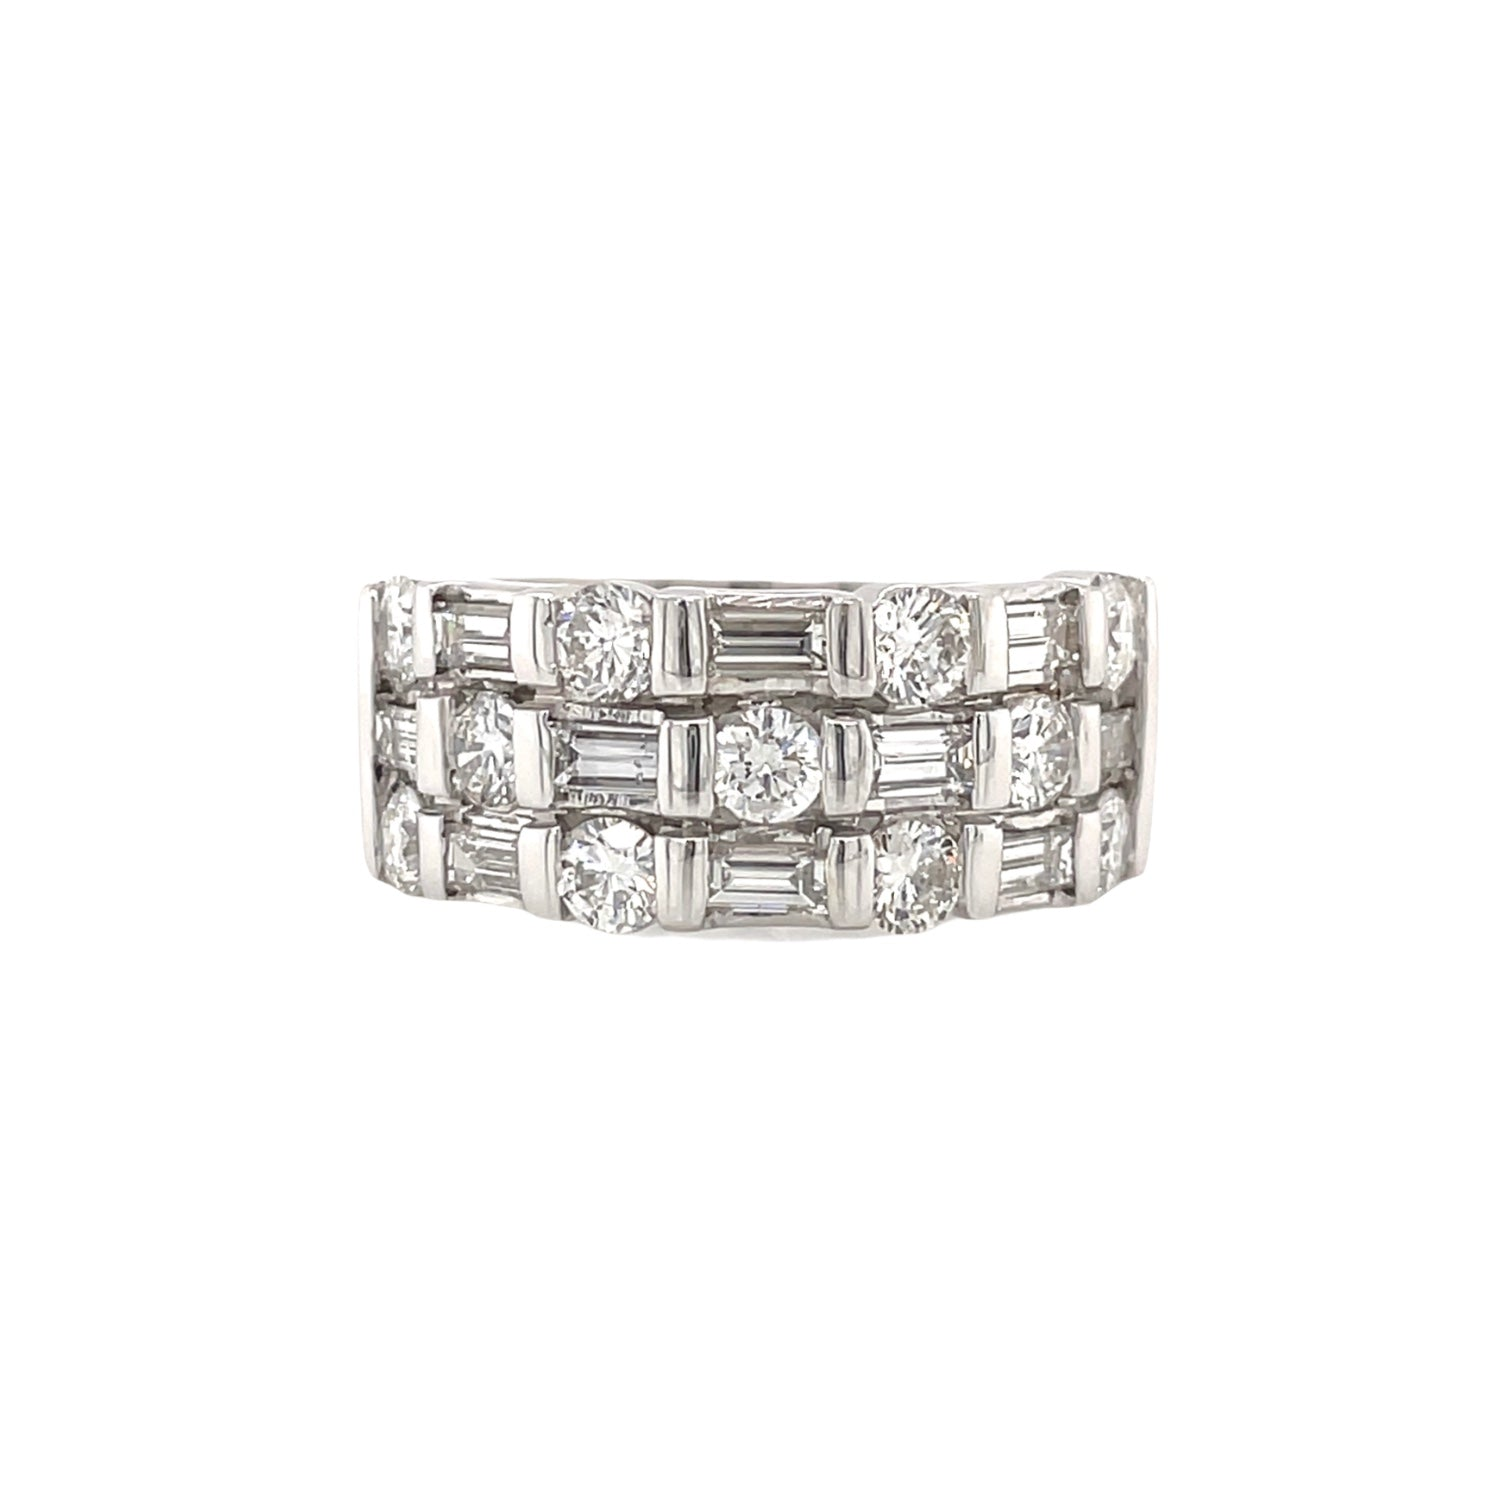 3 Row Alternating Baguette & Round Diamond Ring